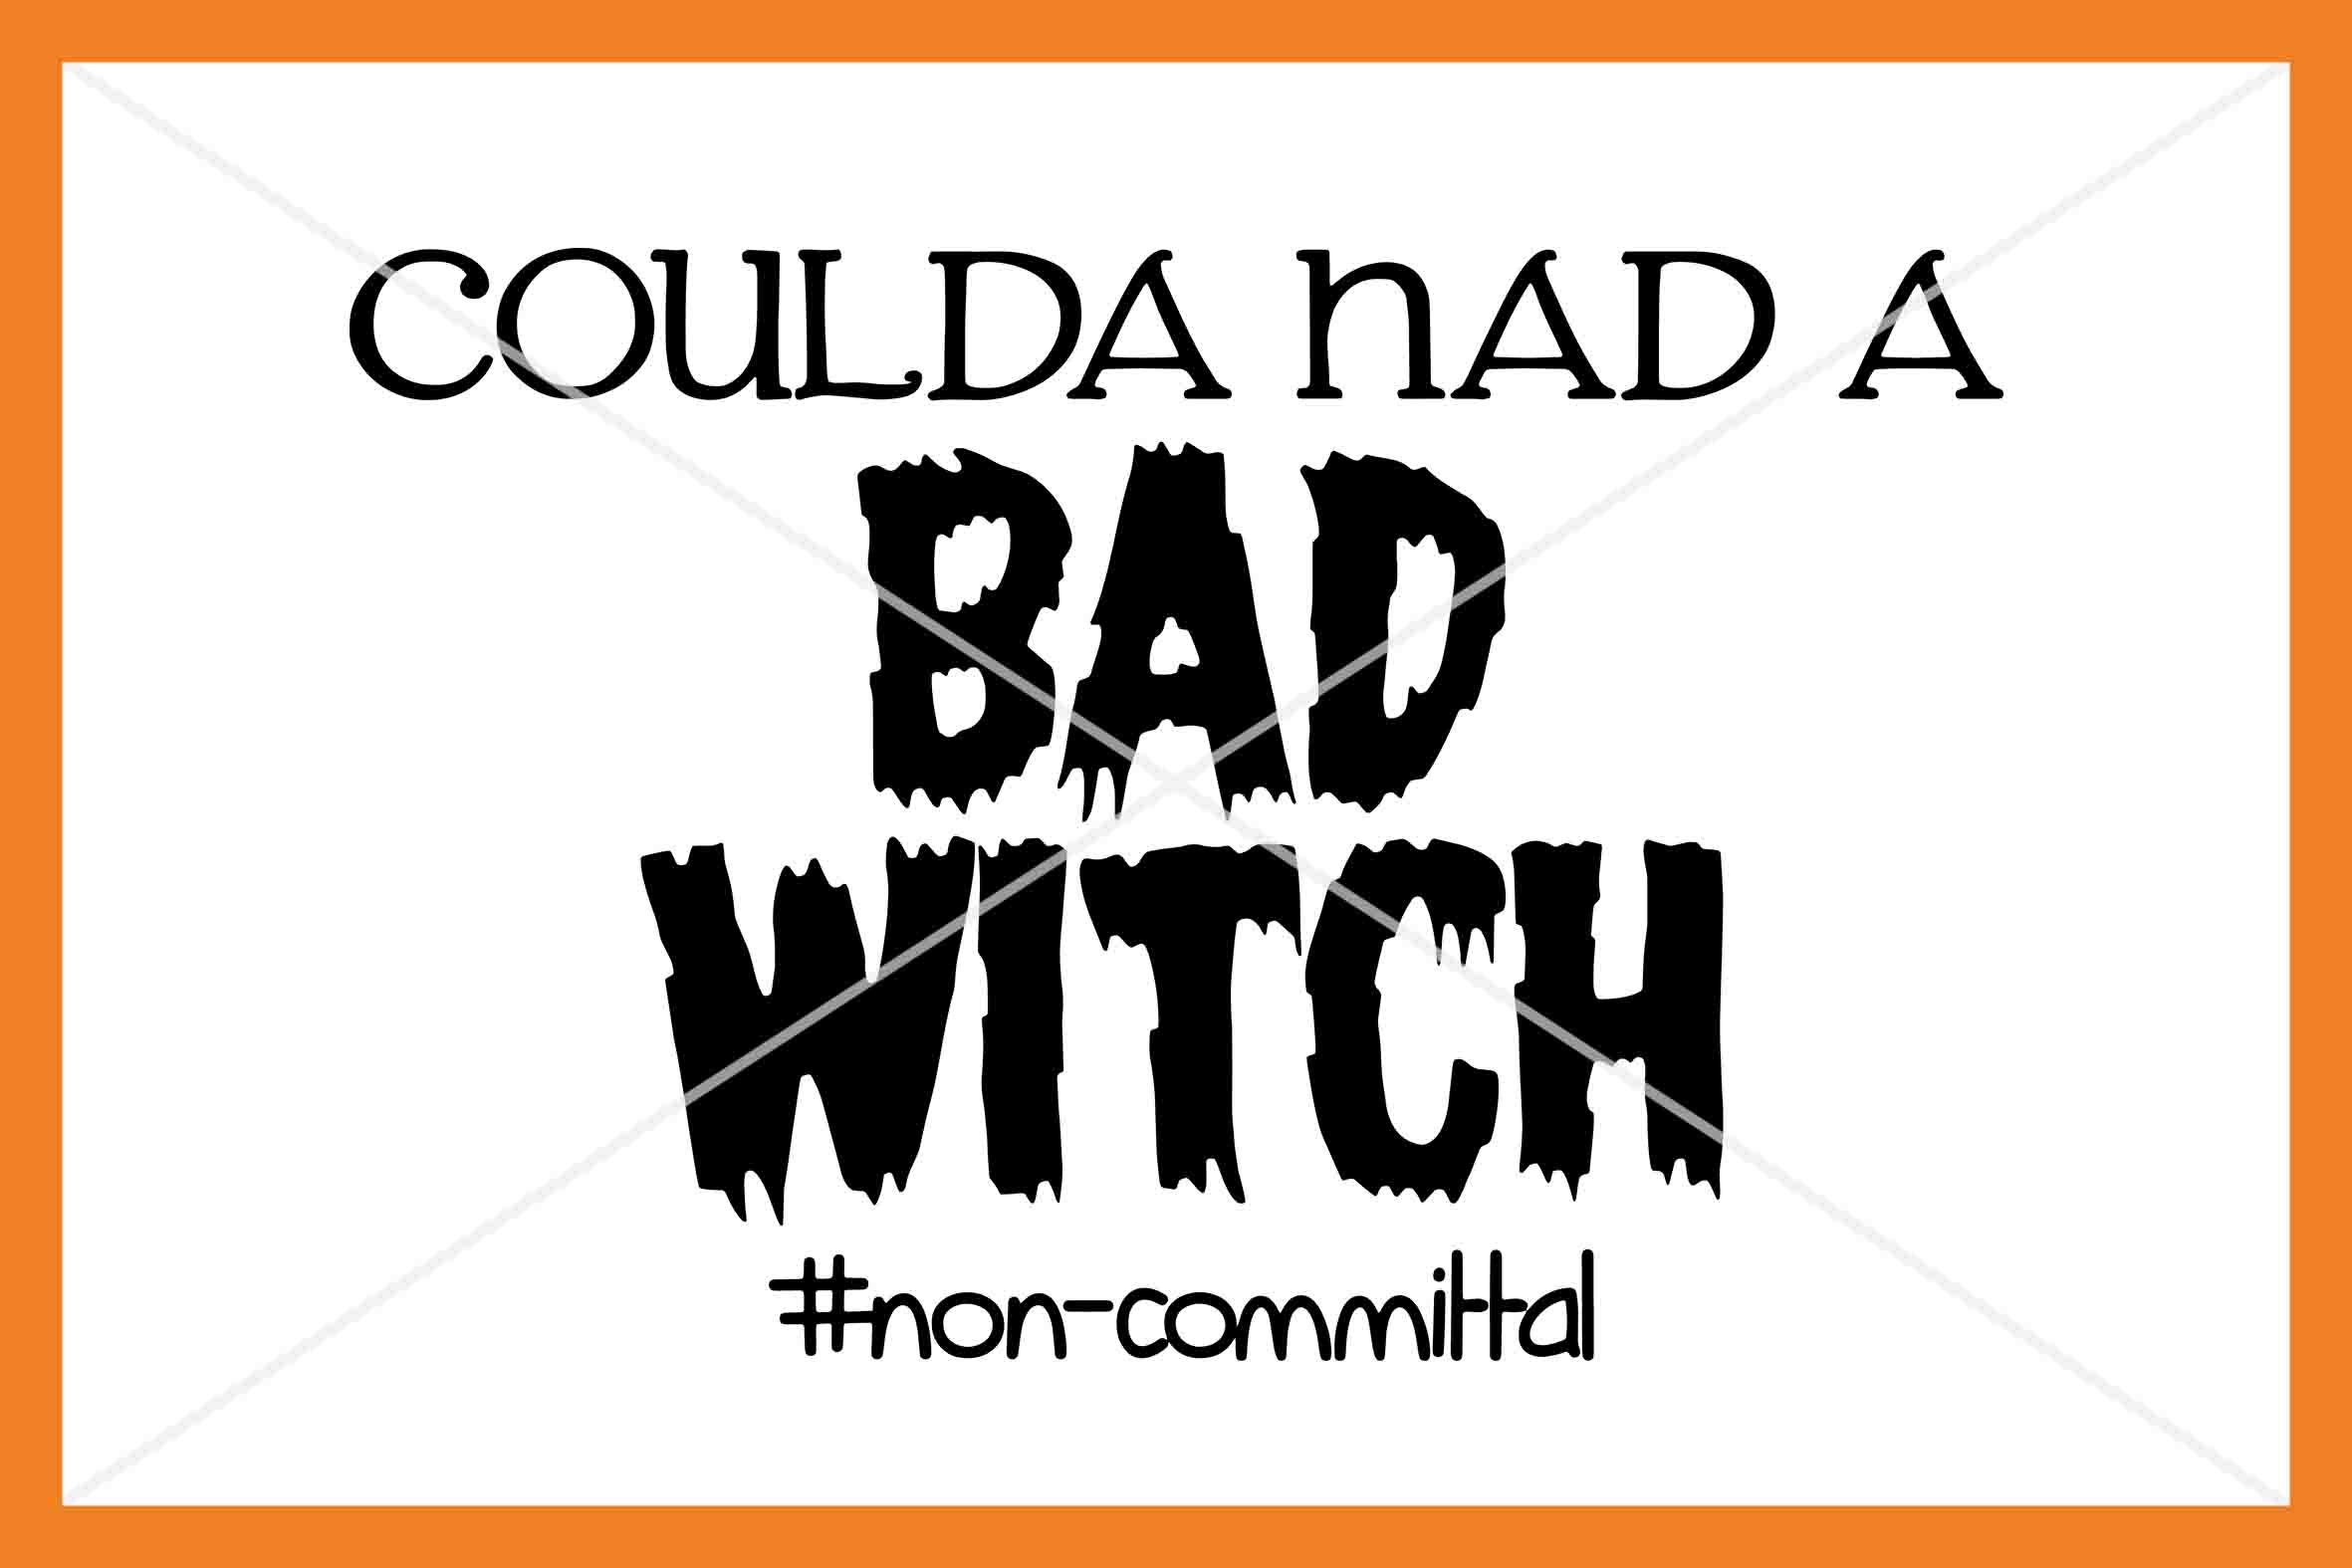 You coulda had a bad witch SVG Silhouette Cameo Cricut Cut example image 1